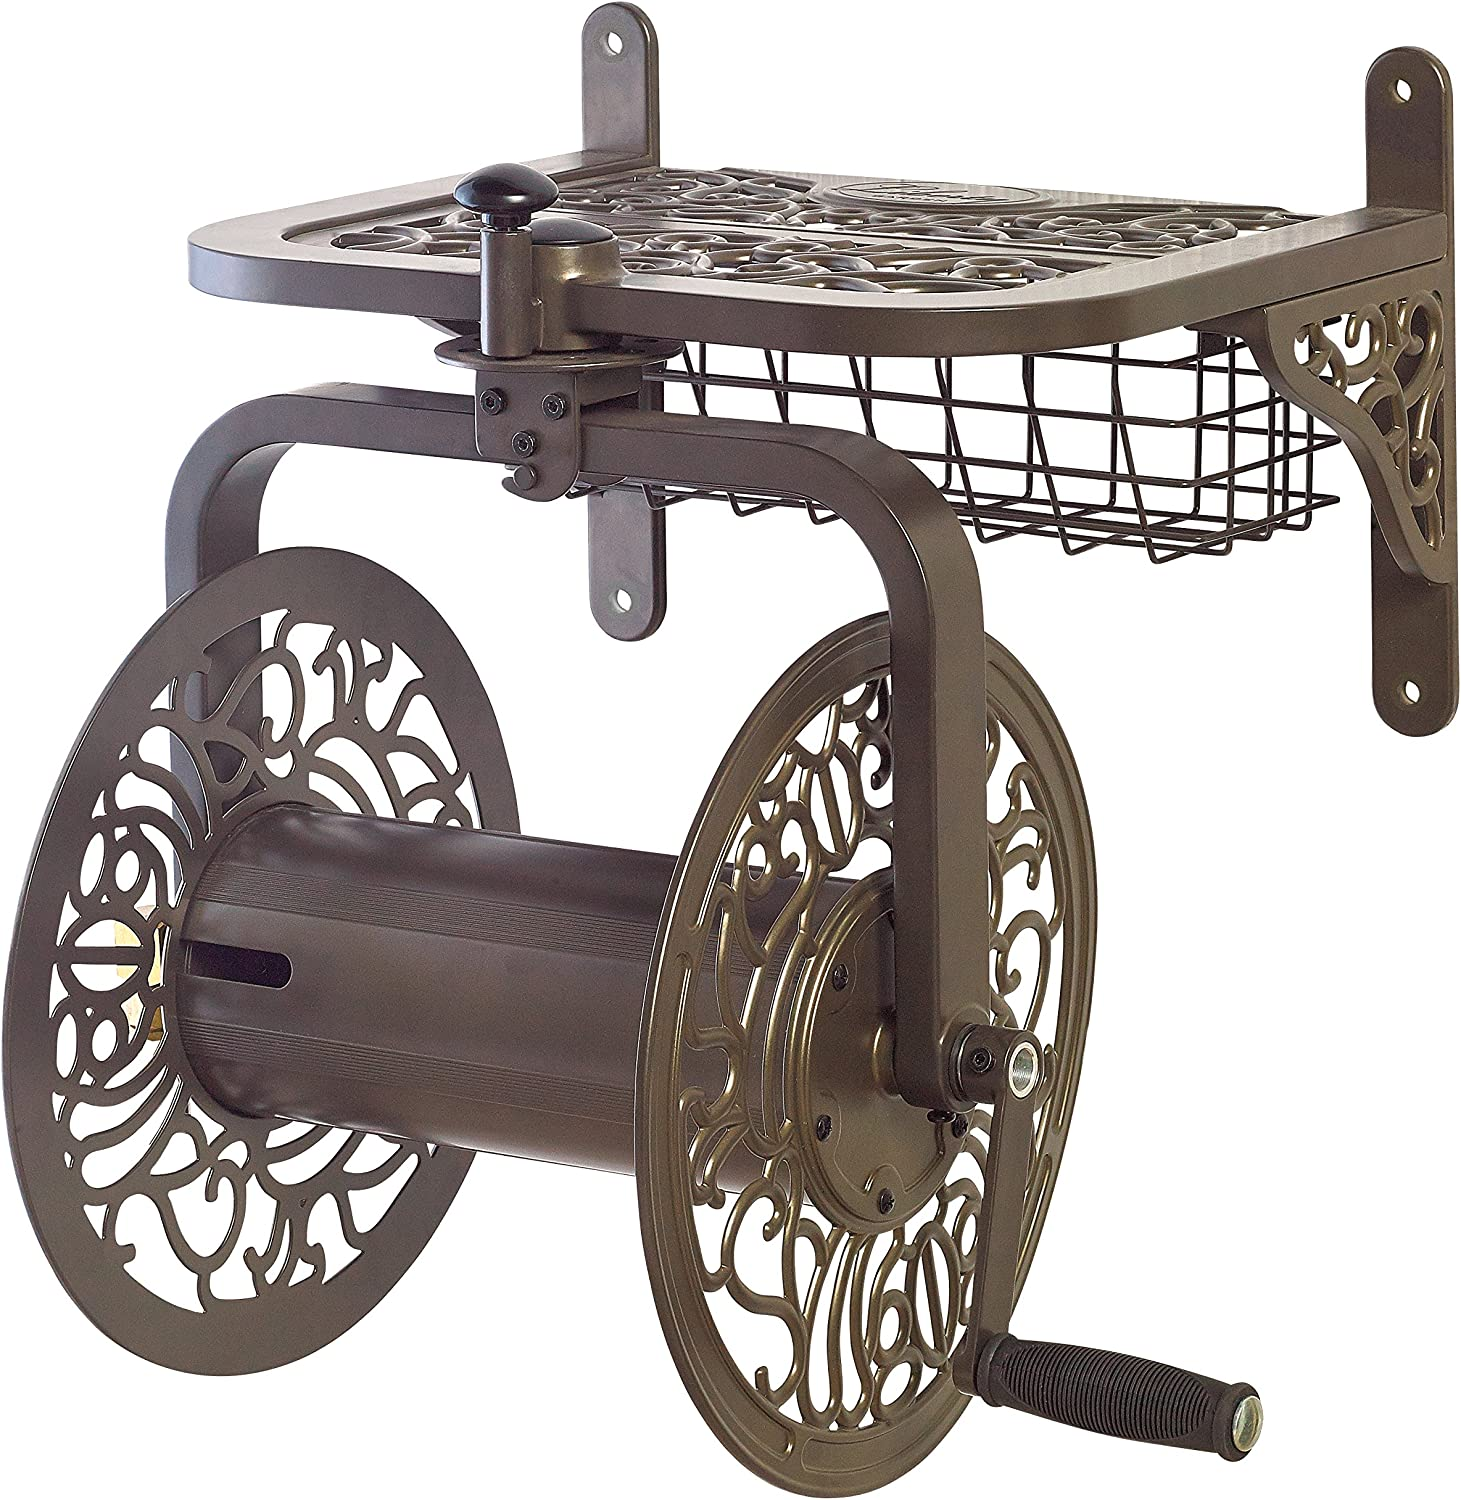 Liberty Garden 714 Decorative Cast Aluminum Navigator Rotating Garden Hose Reel, Holds 125-Feet of 5/8-Inch Hose - Bronze